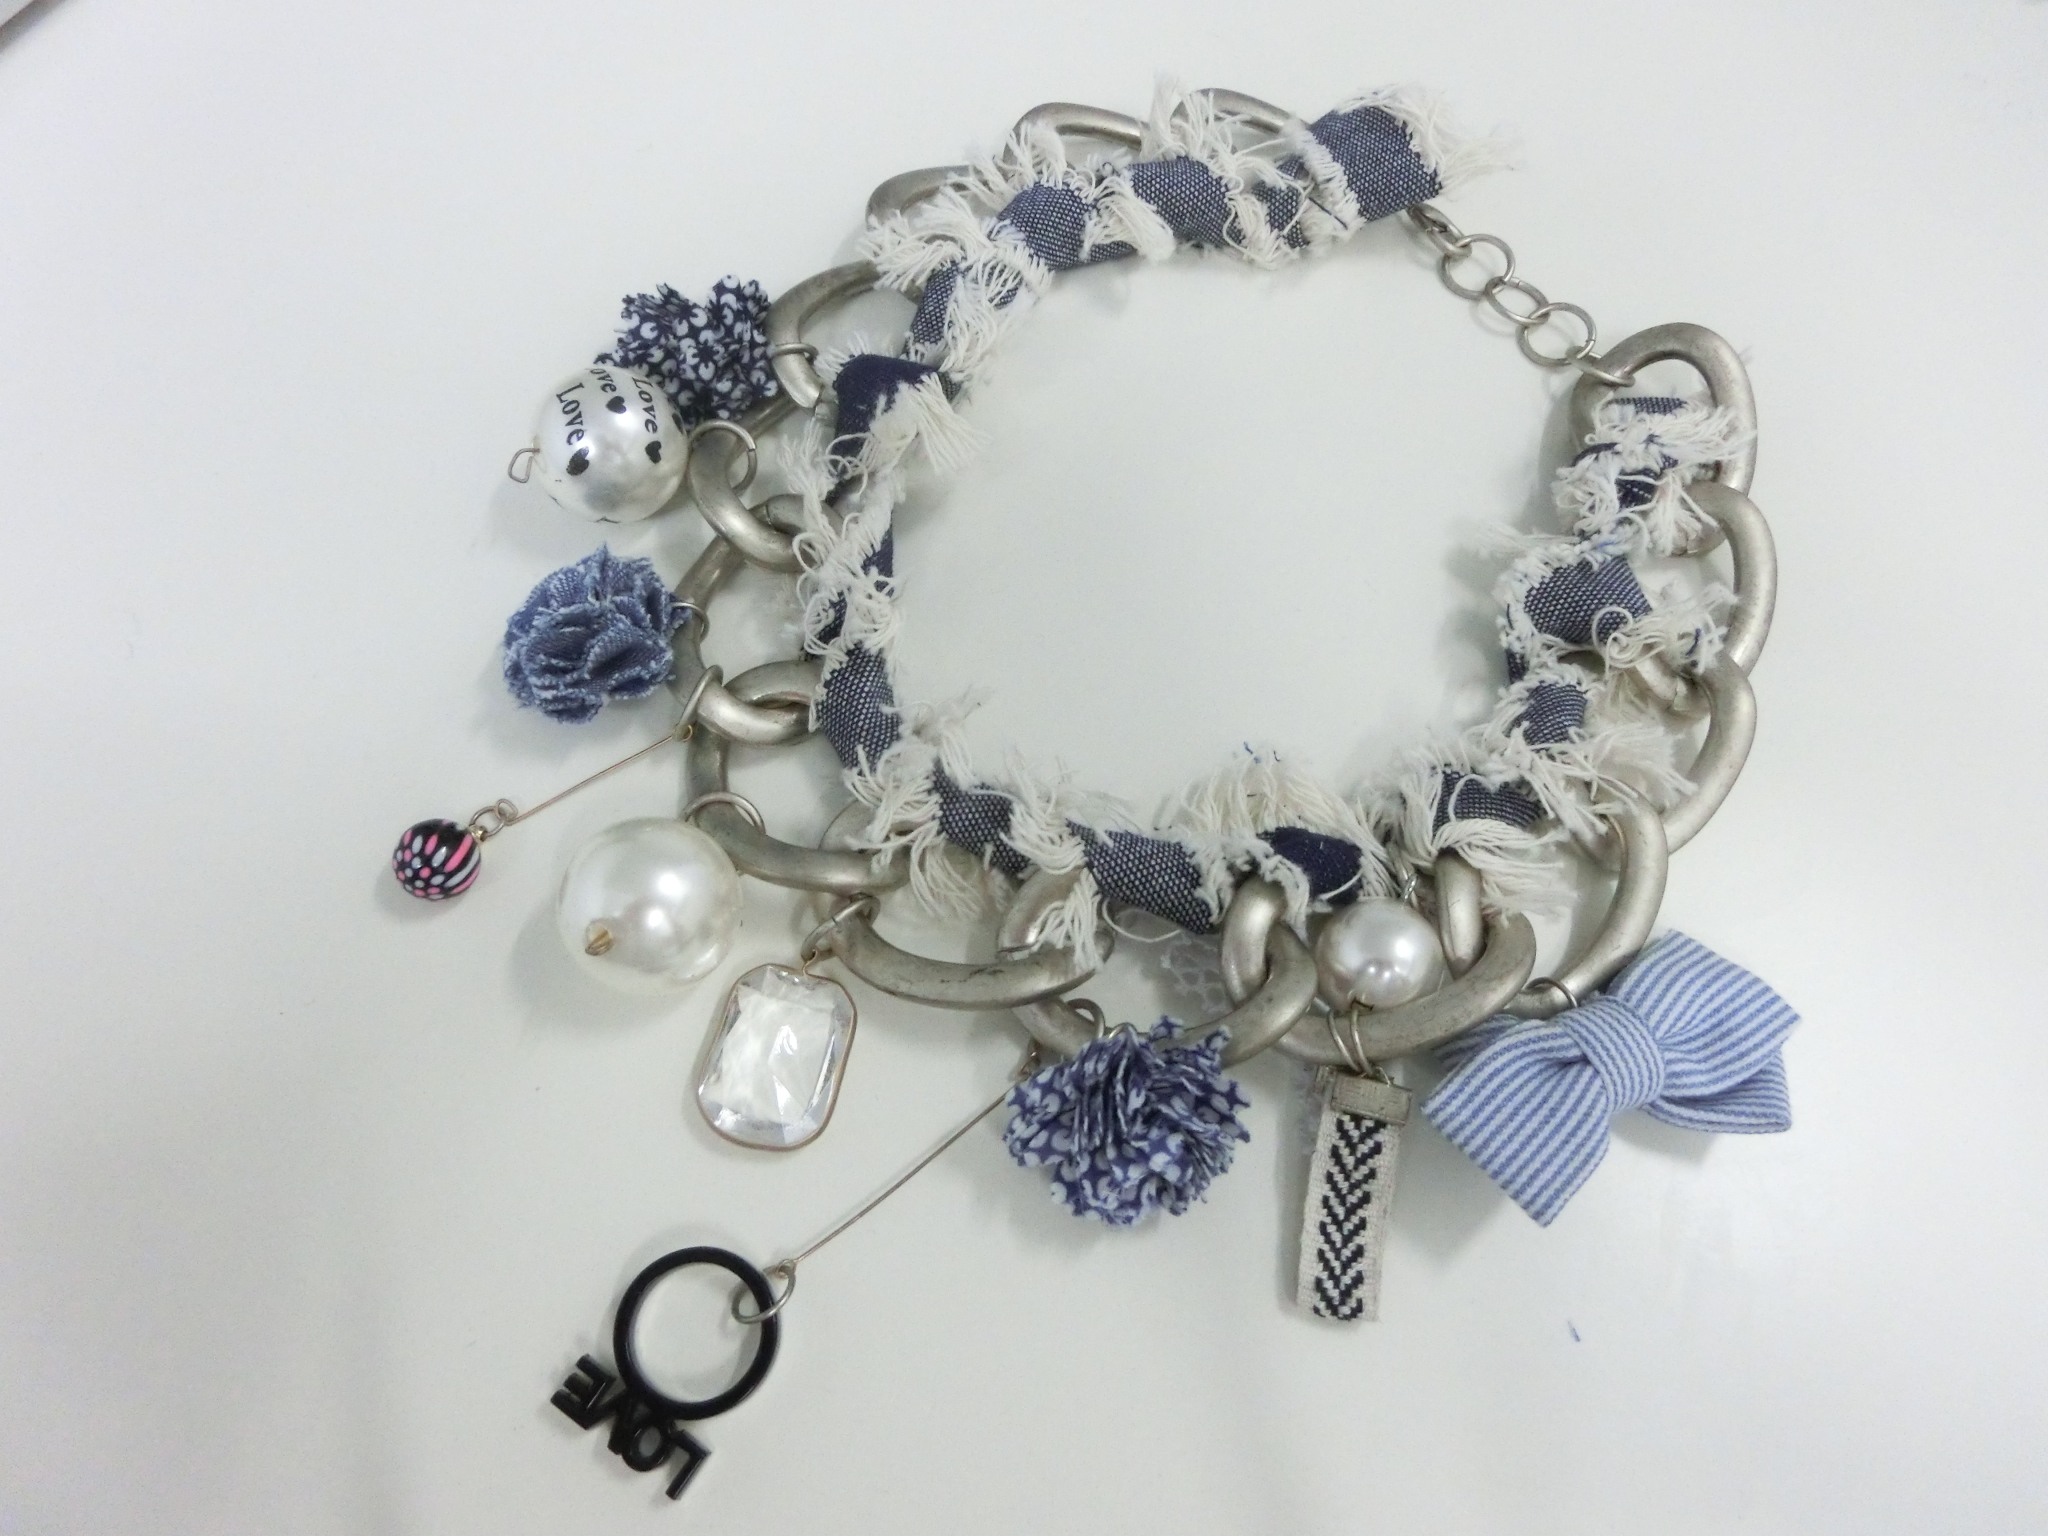 【 UNSEABLE 】Girlish volume necklace / Light blue